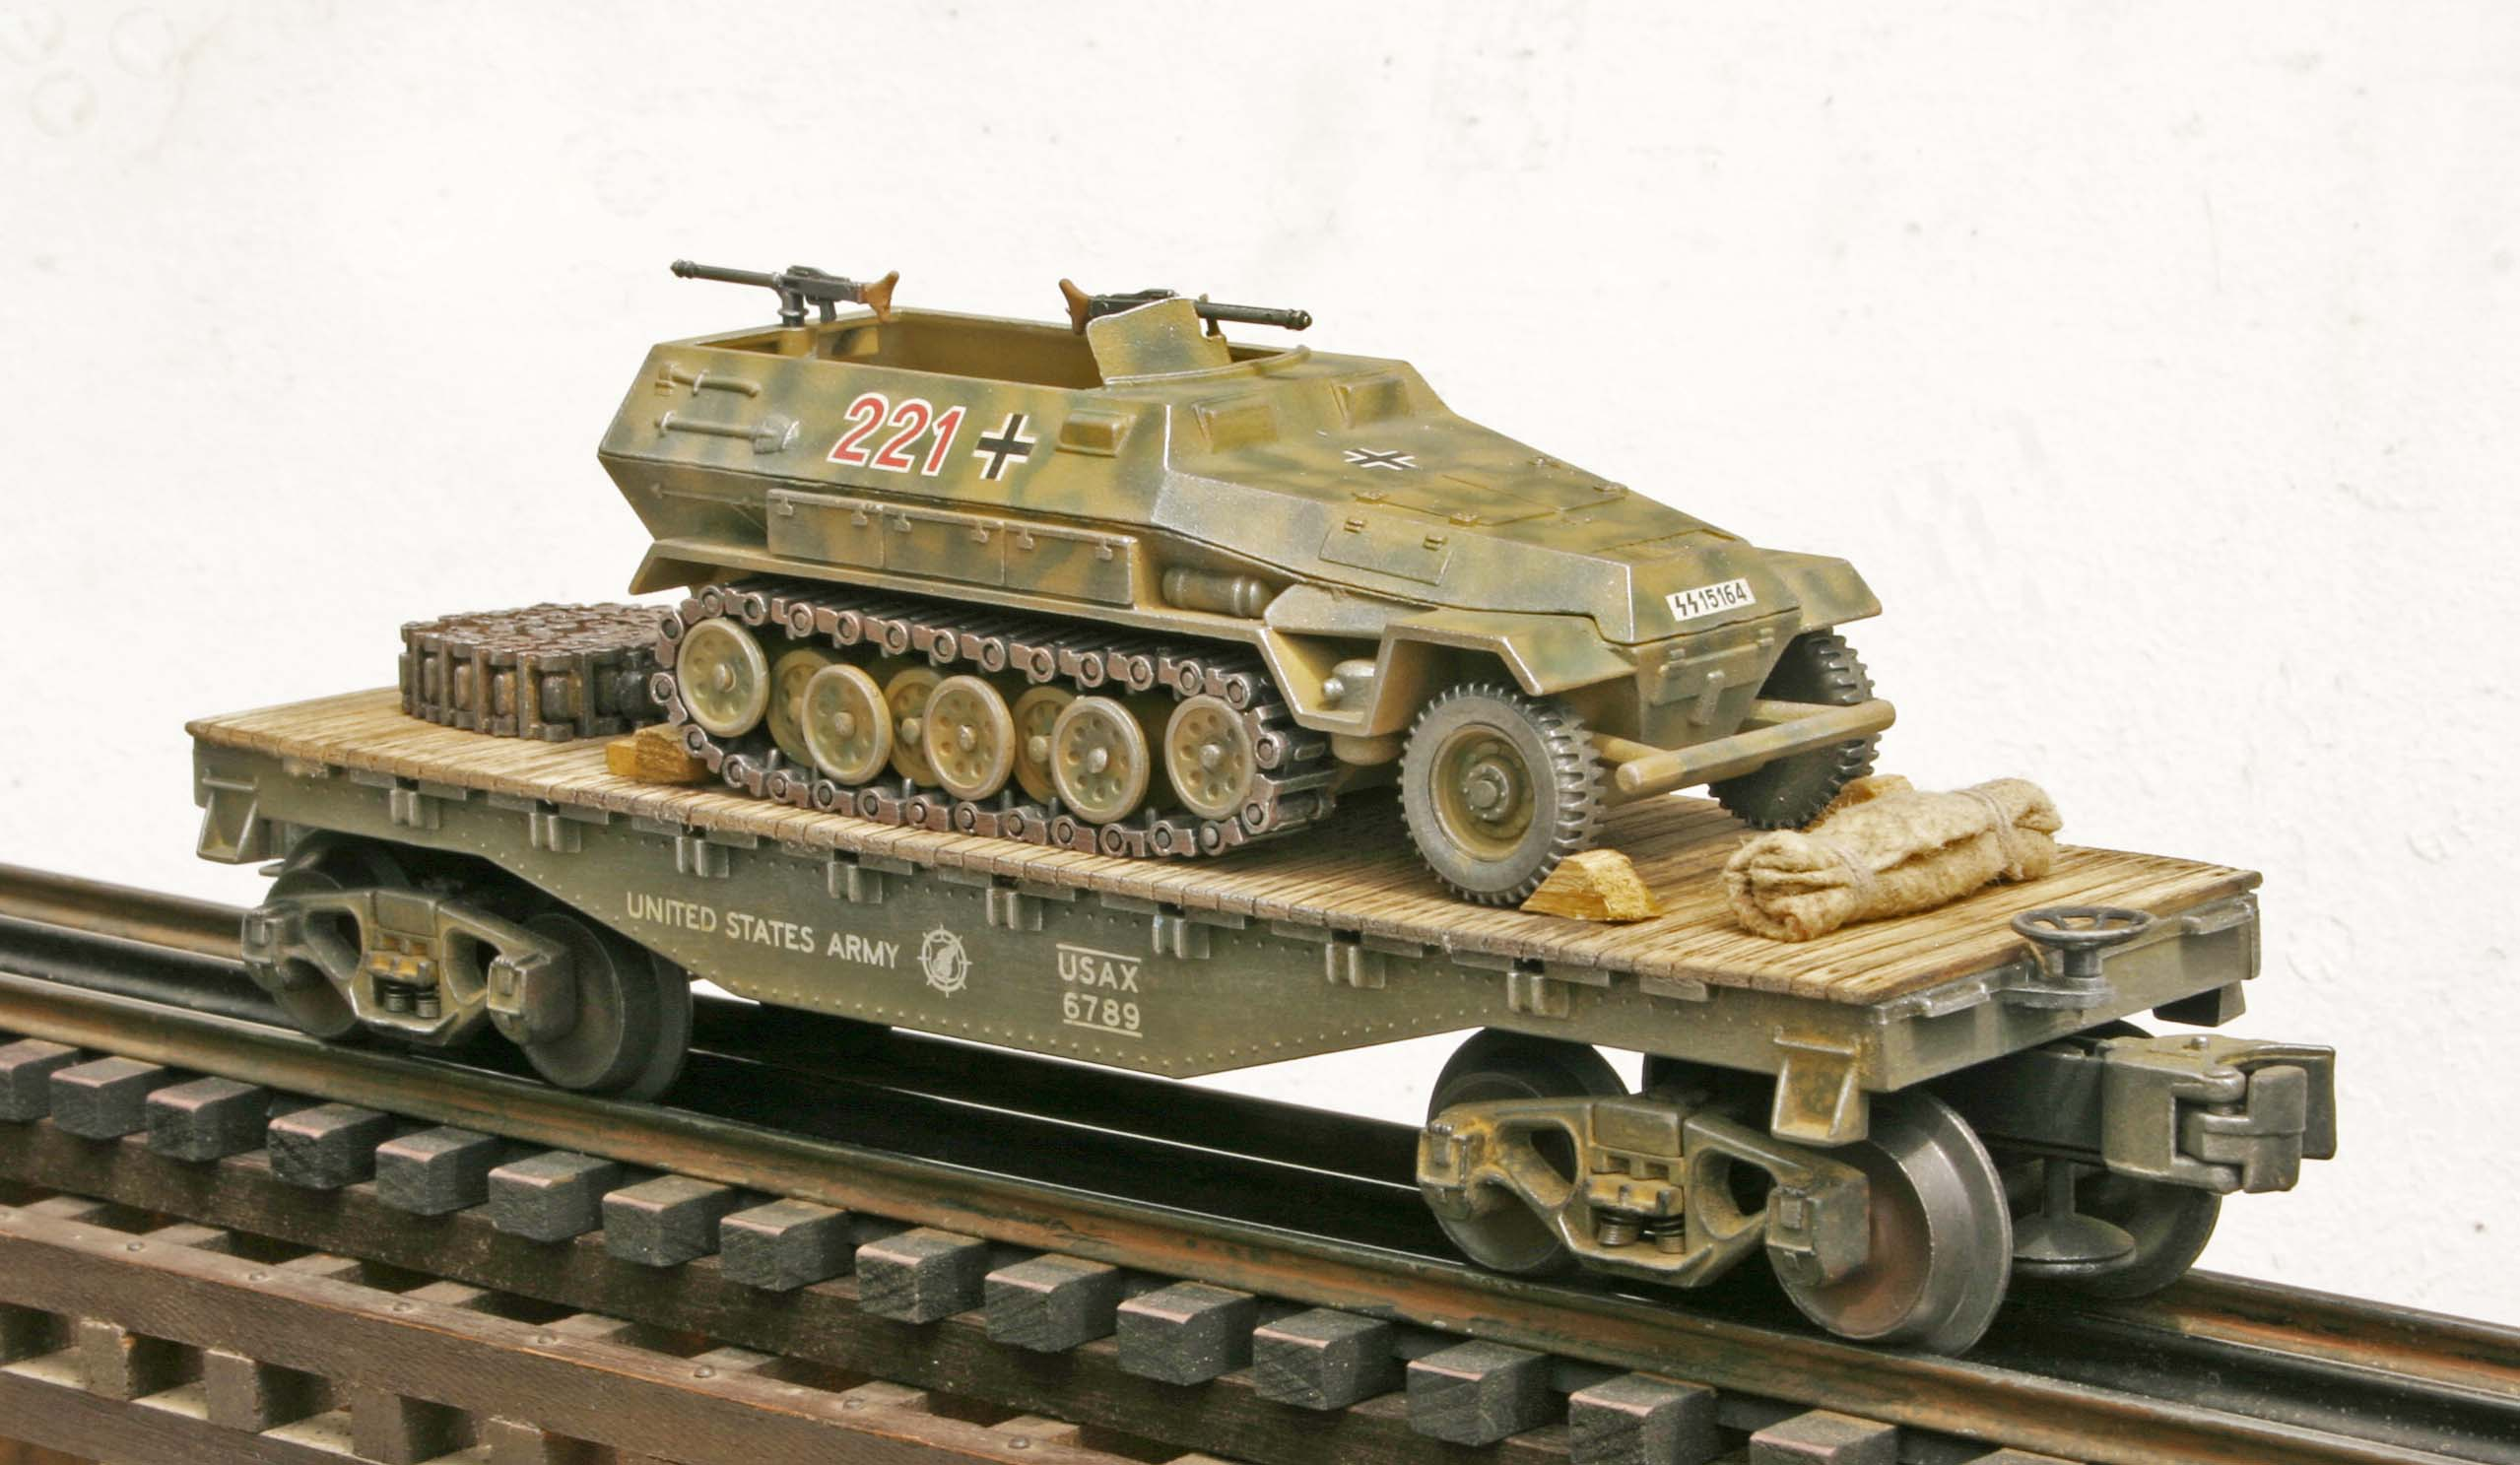 Us Army Captured Wwii German Sd Kfz251 Half Track No 221 On U S Army 35 Flat Car Capav4 4 Fc1